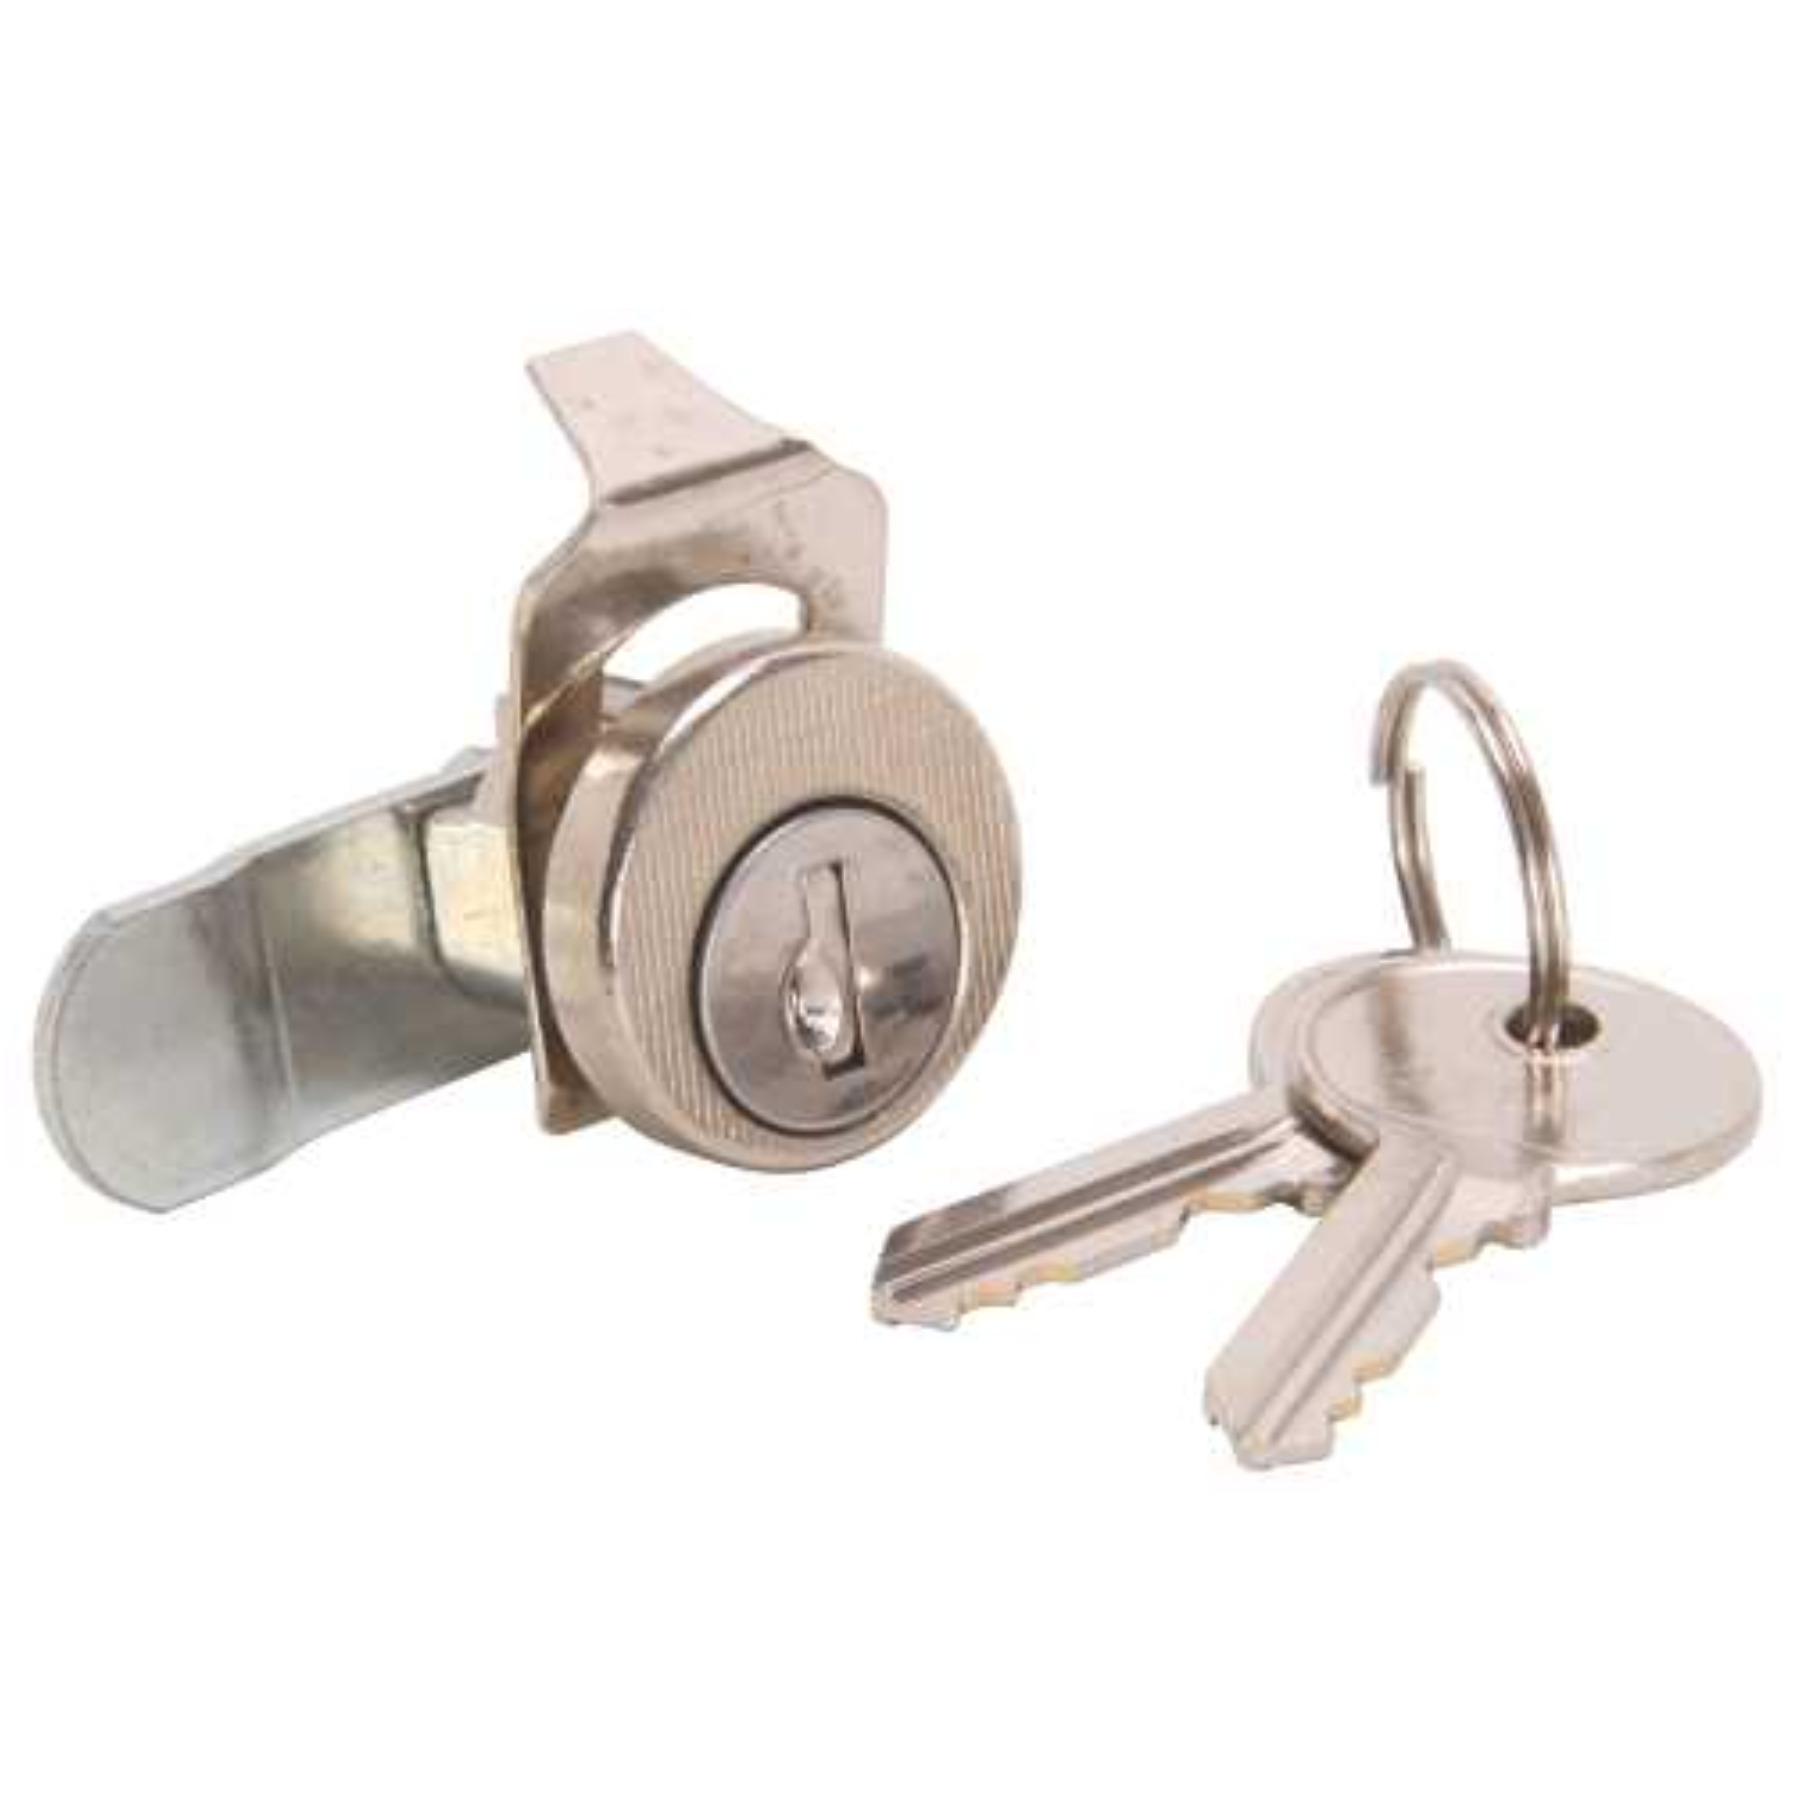 BOMMER MAILBOX LOCK WITH DUST COVER